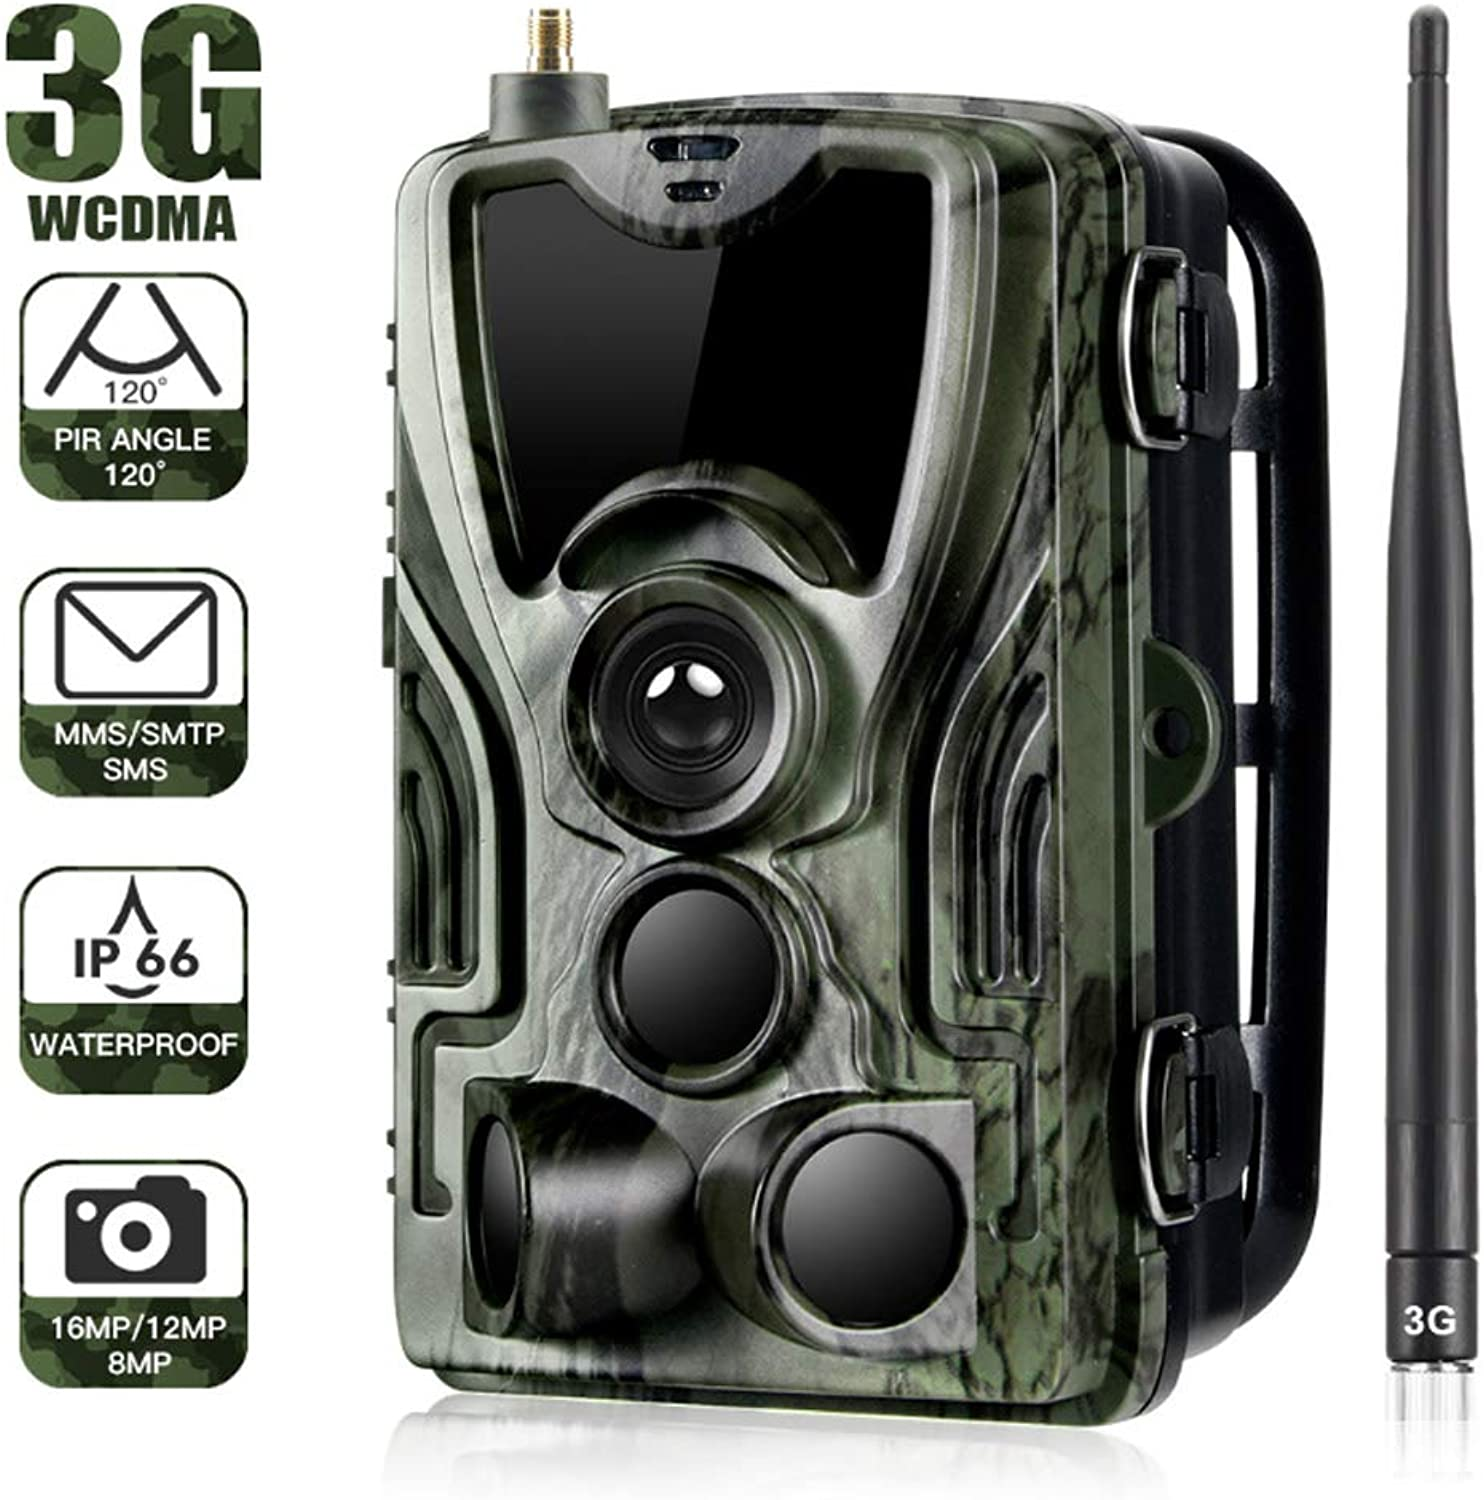 Wildlife Trail Game Camera 16MP 1080P Waterproof Hunting, 120° Detection Range Motion Activated Night Vision LCD 3G Motion Sensor for Wildlife Monitoring